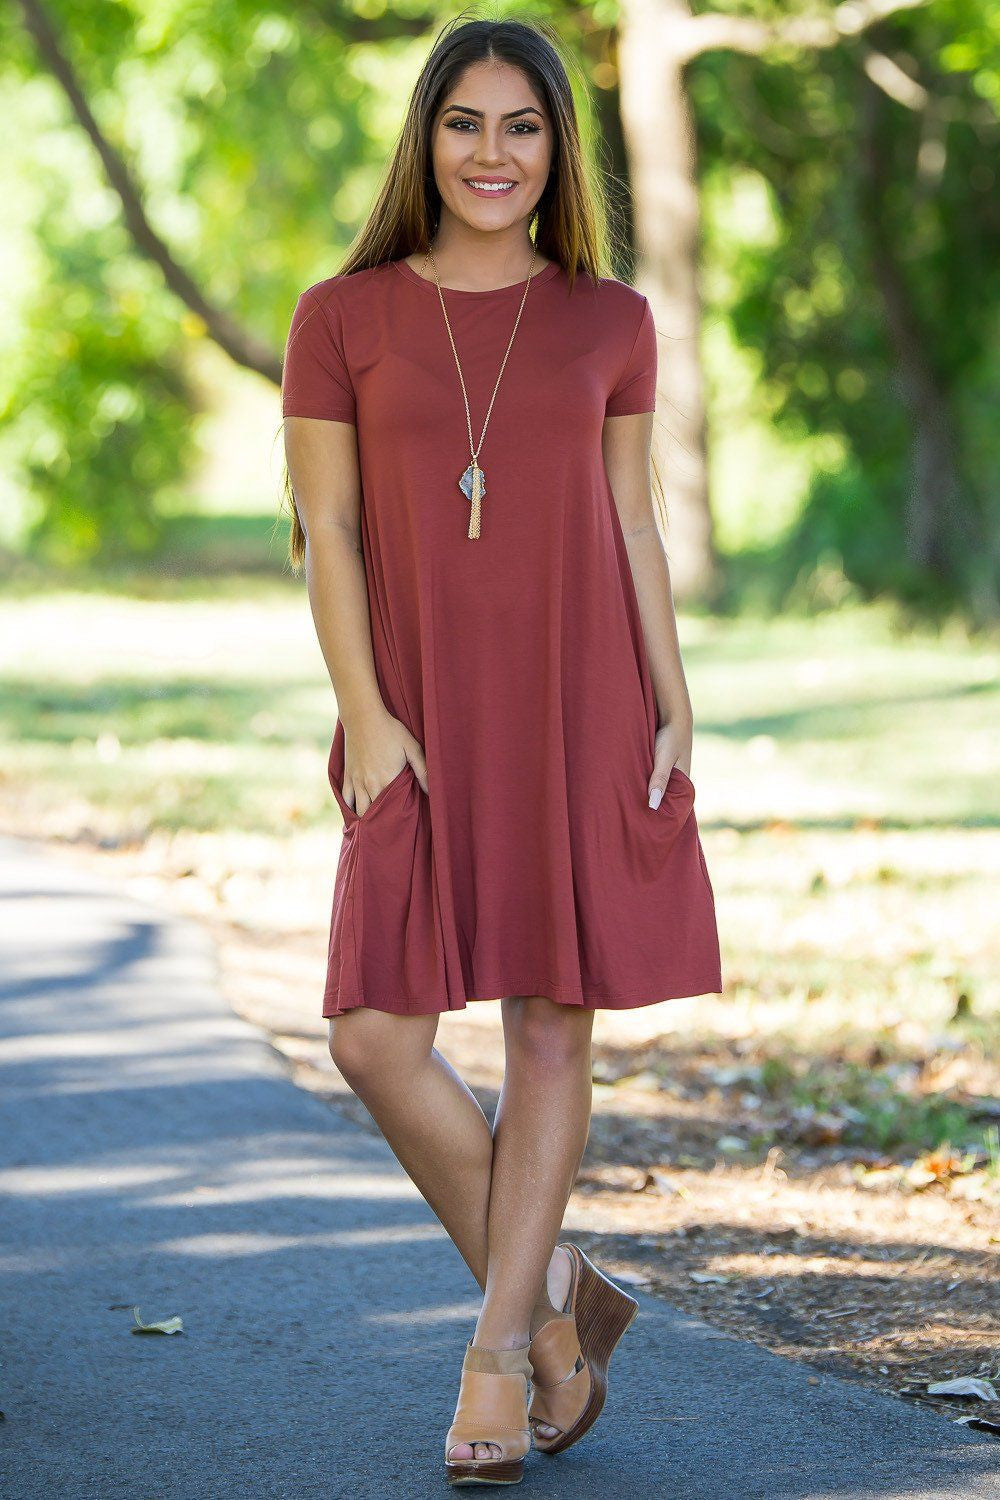 Piko Short Sleeve Swing Dress - Rust - Piko Clothing